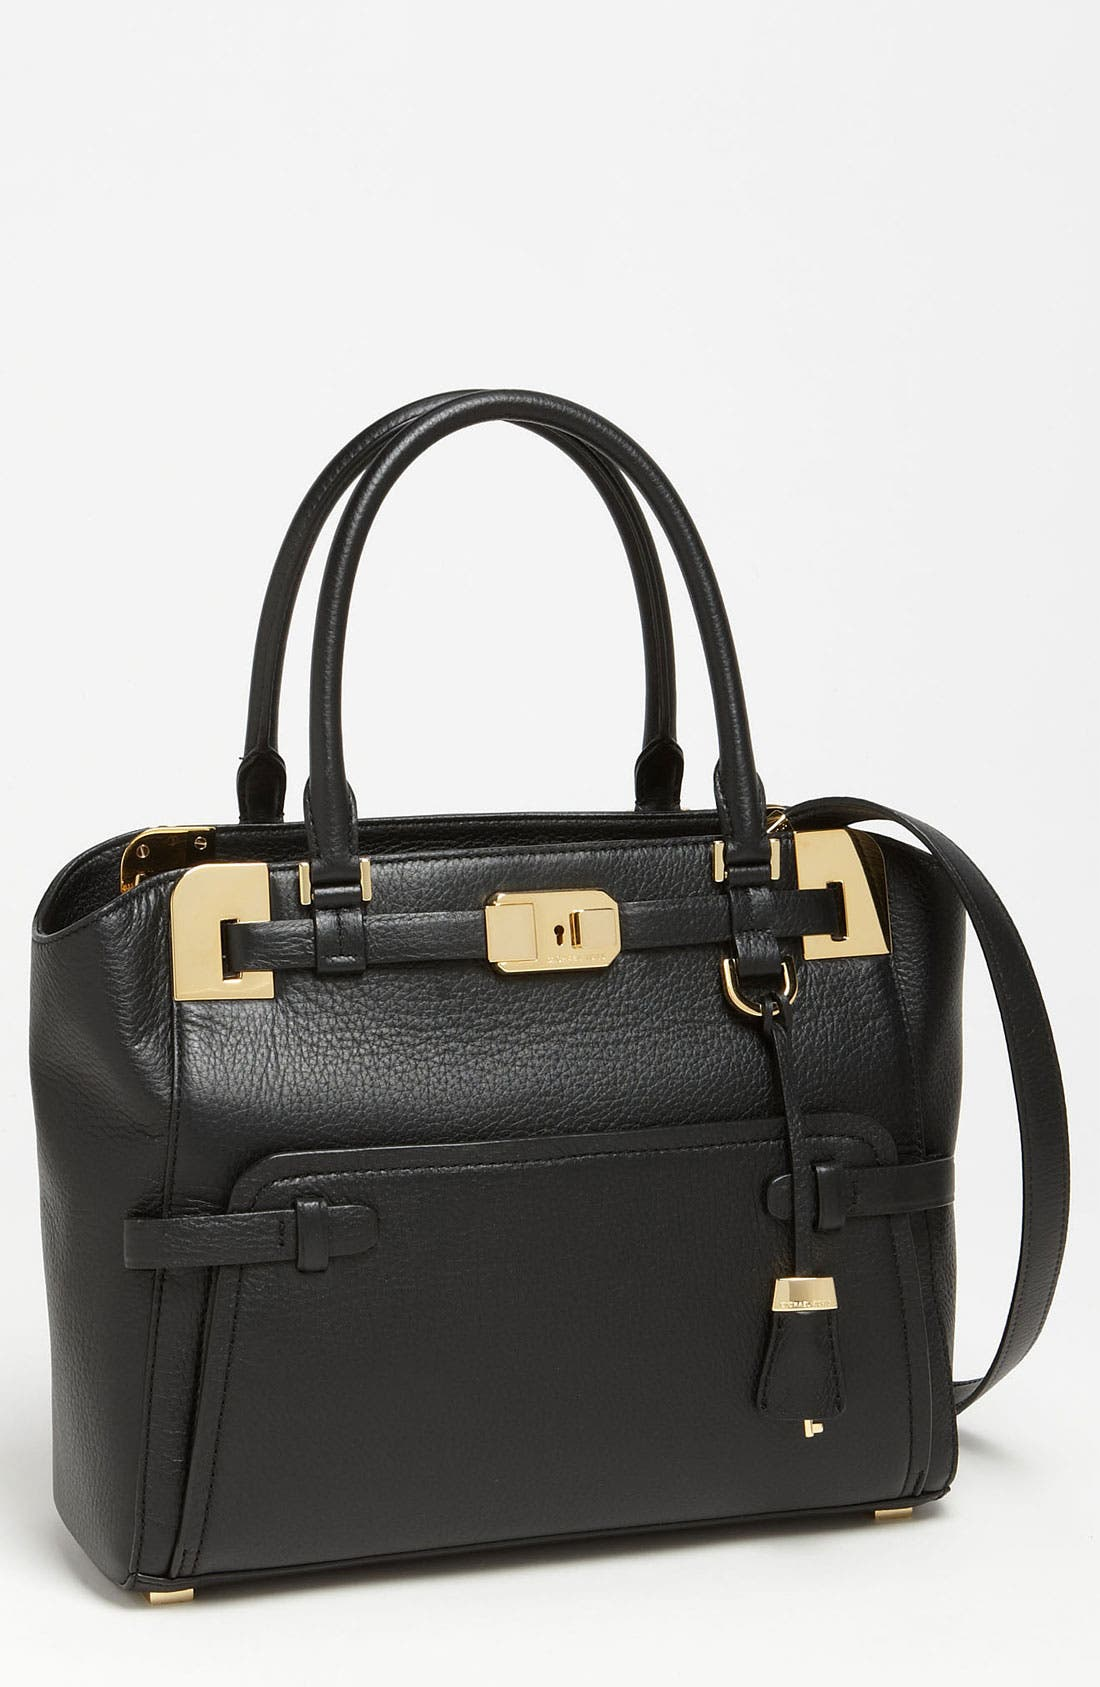 Alternate Image 1 Selected - Michael Kors 'Blake' Leather Satchel